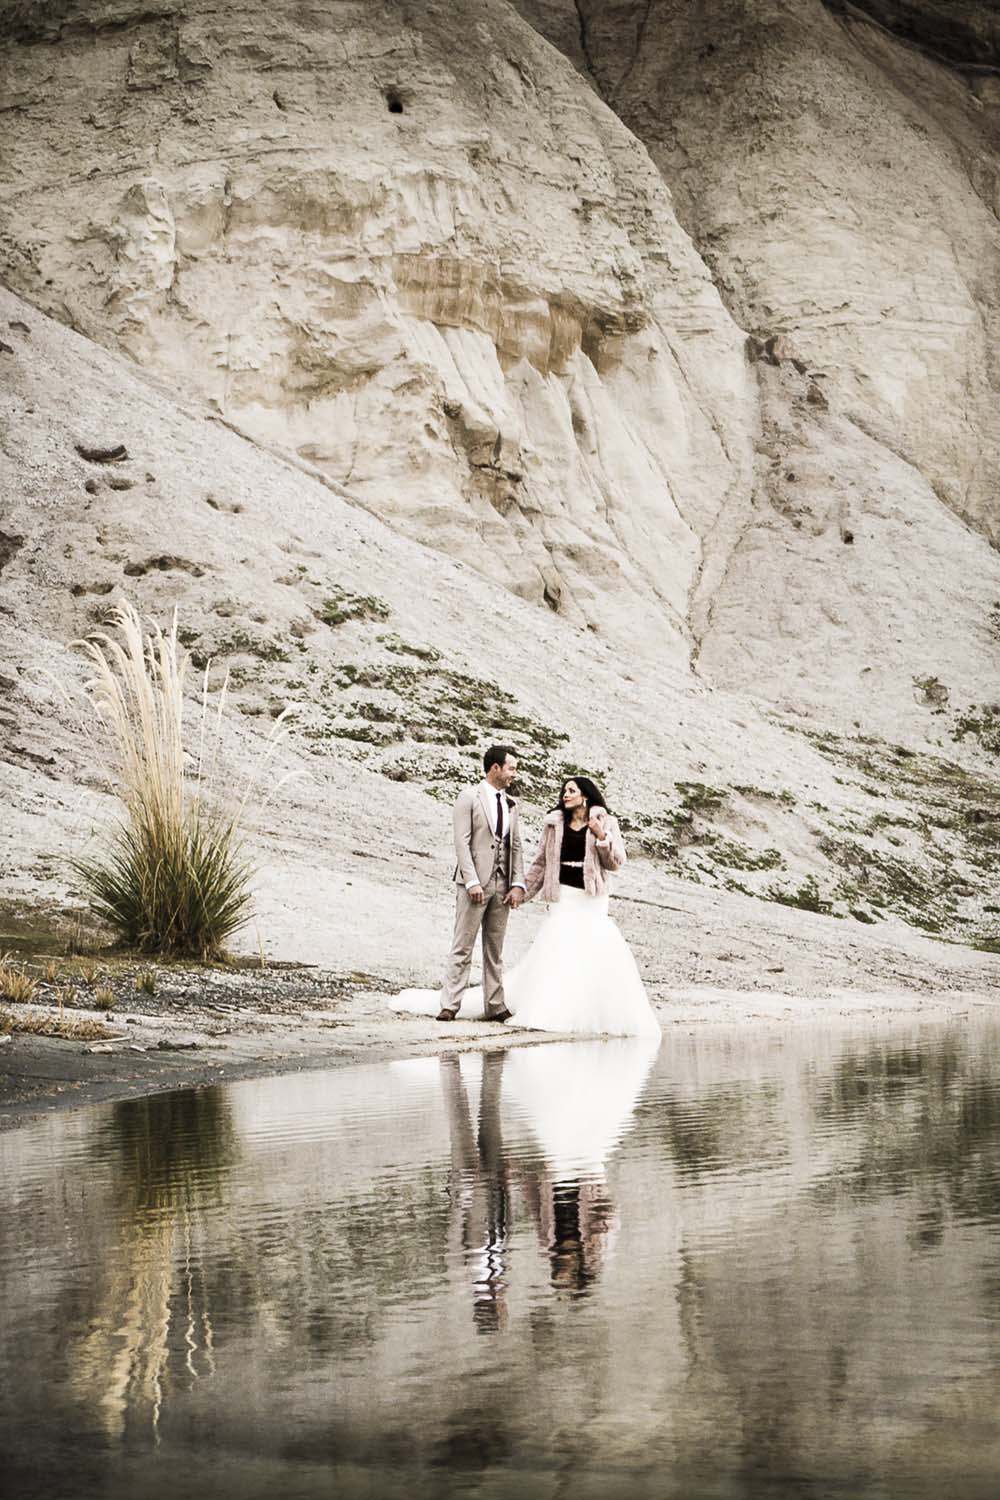 Omakau winter wedding inspiration | Photography by Fluidphoto | Gown from Astra Bridal | www.borrowedandblue.kiwi